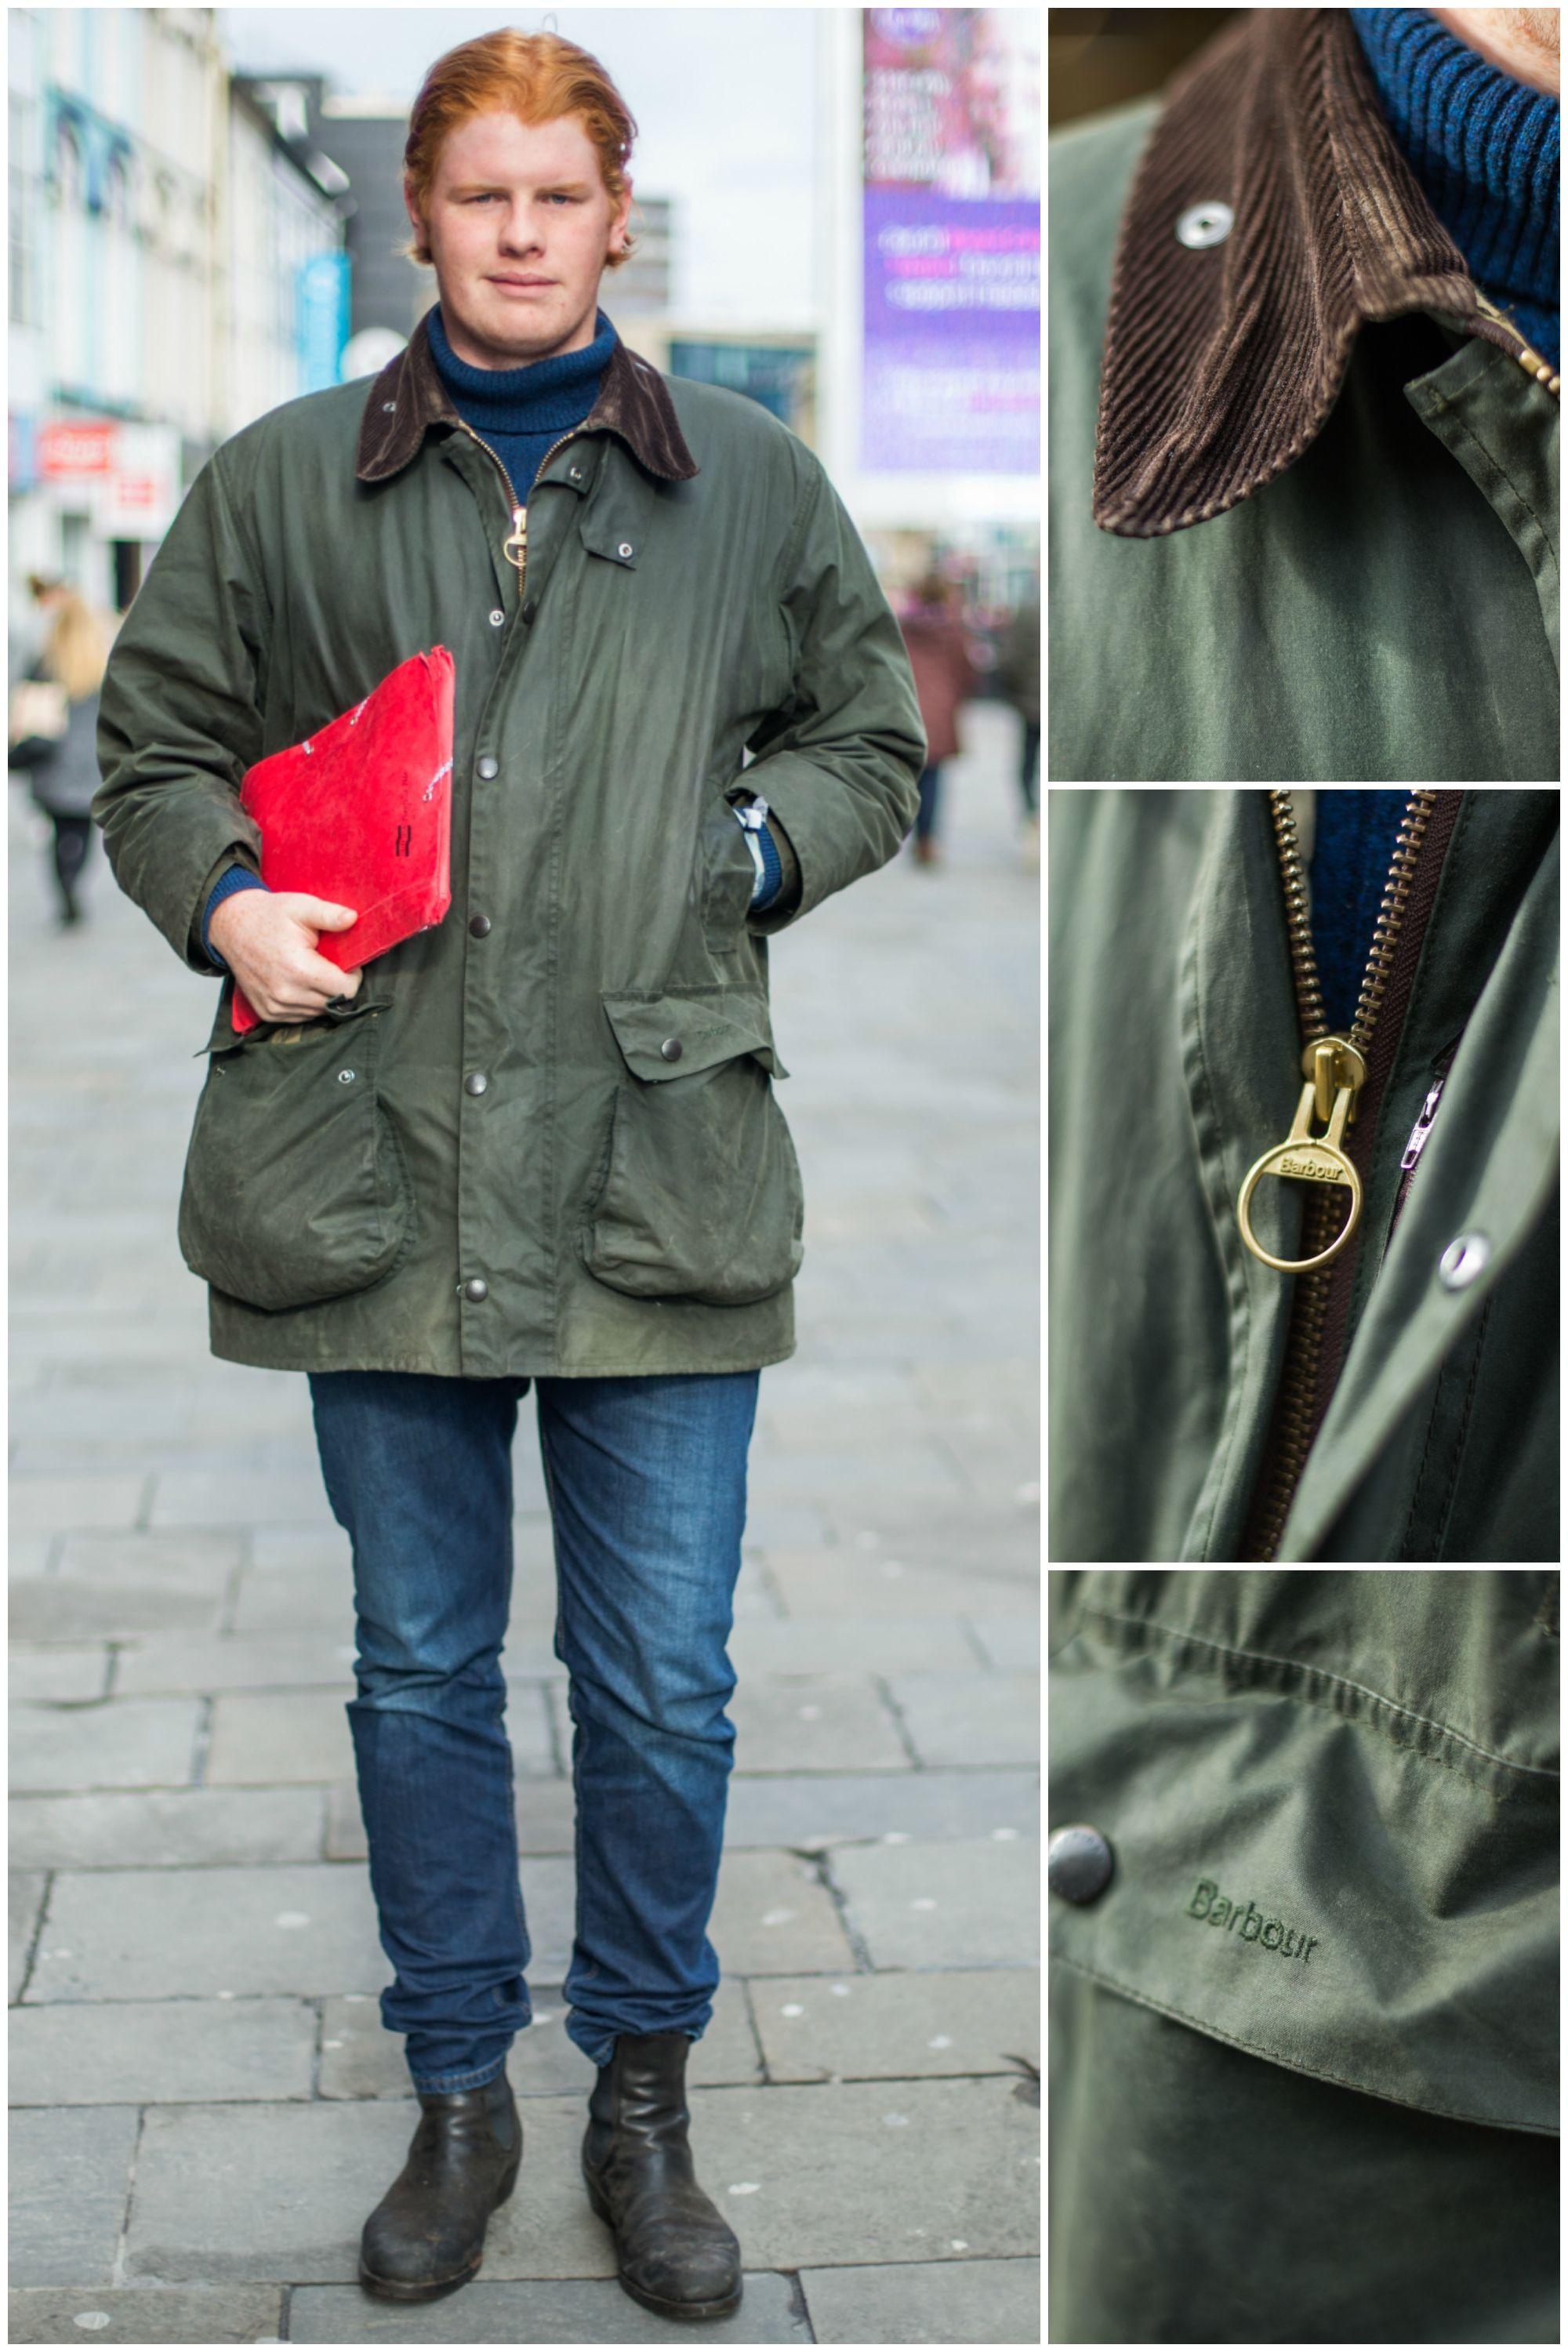 a4bfb79f3 We spotted Tom wearing his vintage Barbour Wax Jacket - which he inherited  from his Great Grandfather!